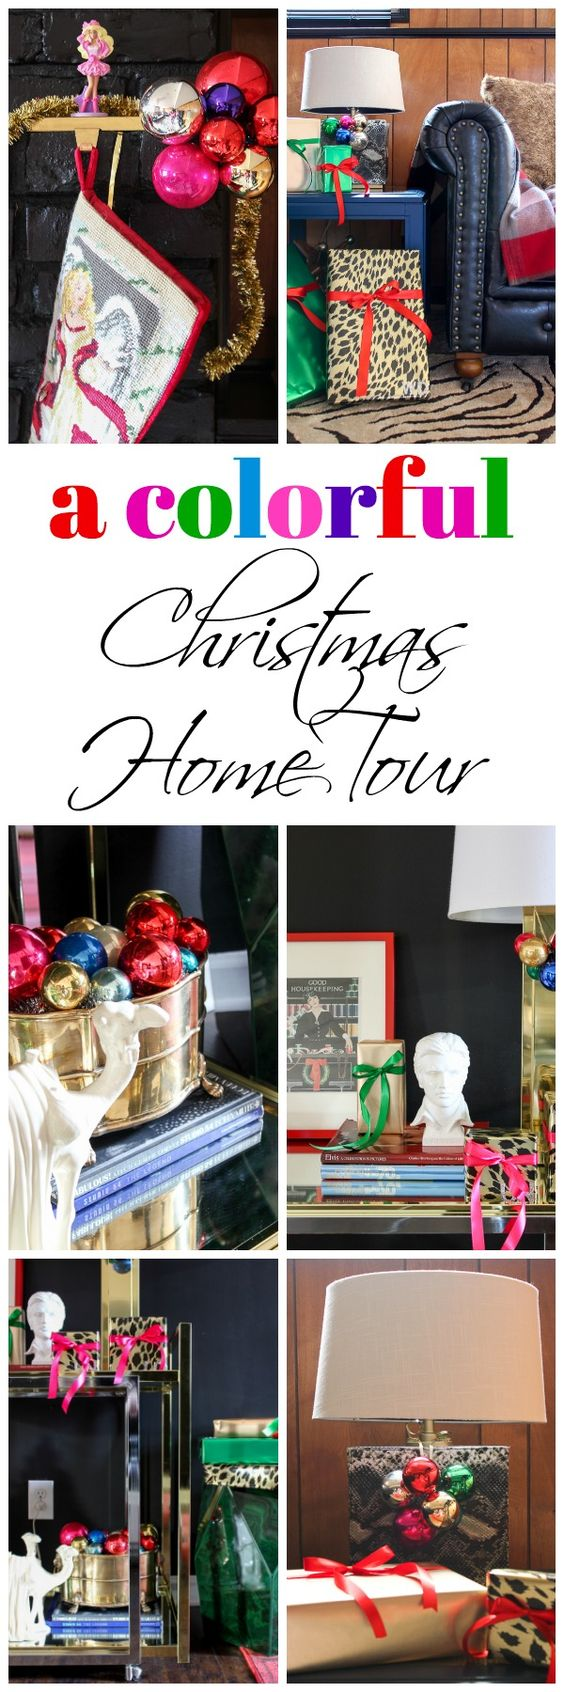 A Colorful Christmas Home Tour - if you're all about color and meaningful holiday decorating, then don't miss this unique home tour!